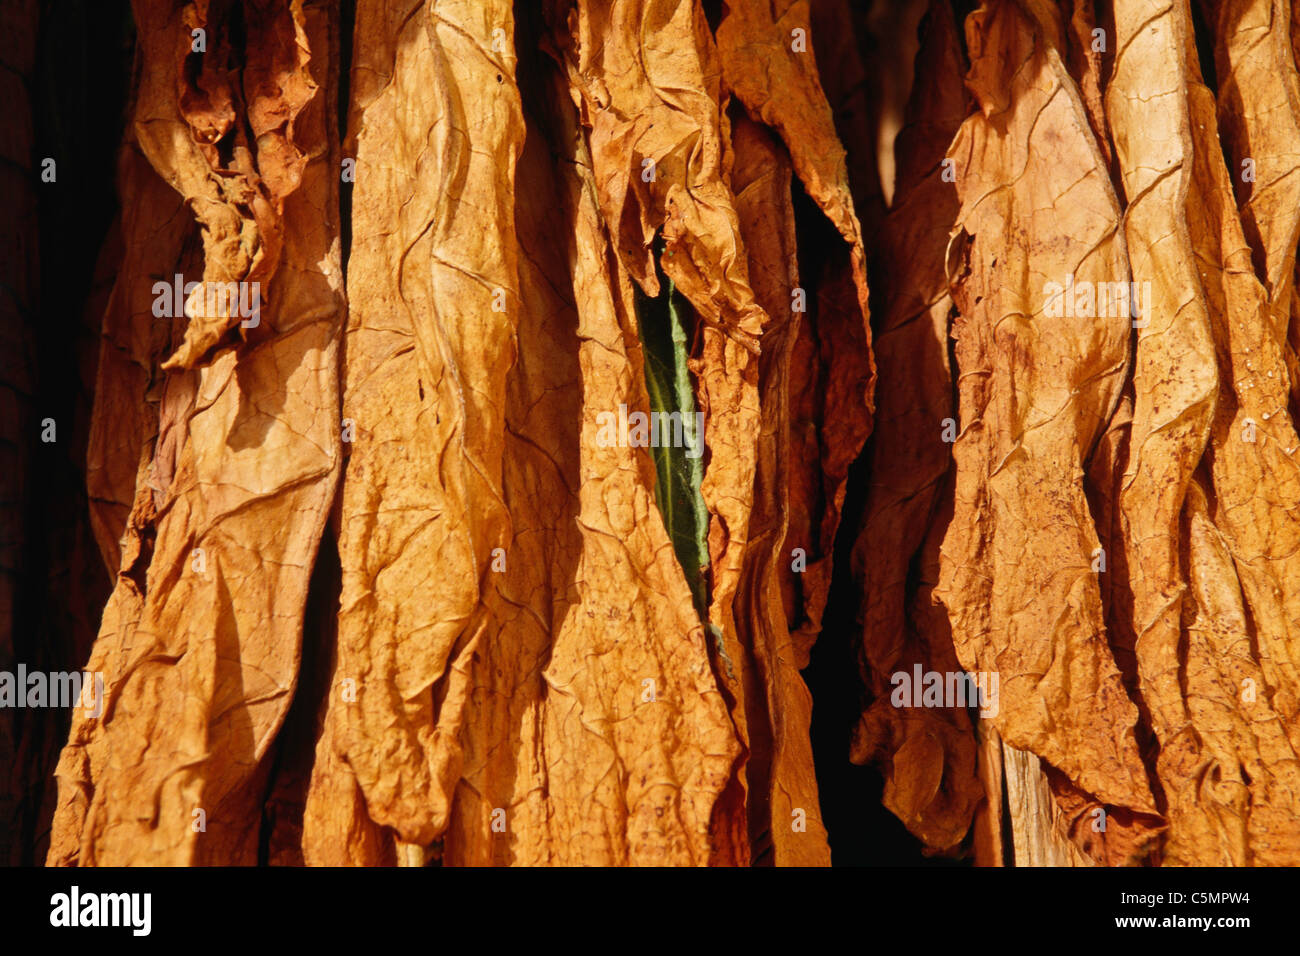 Shade Tobacco Leaves, Air Curing, USA - Stock Image